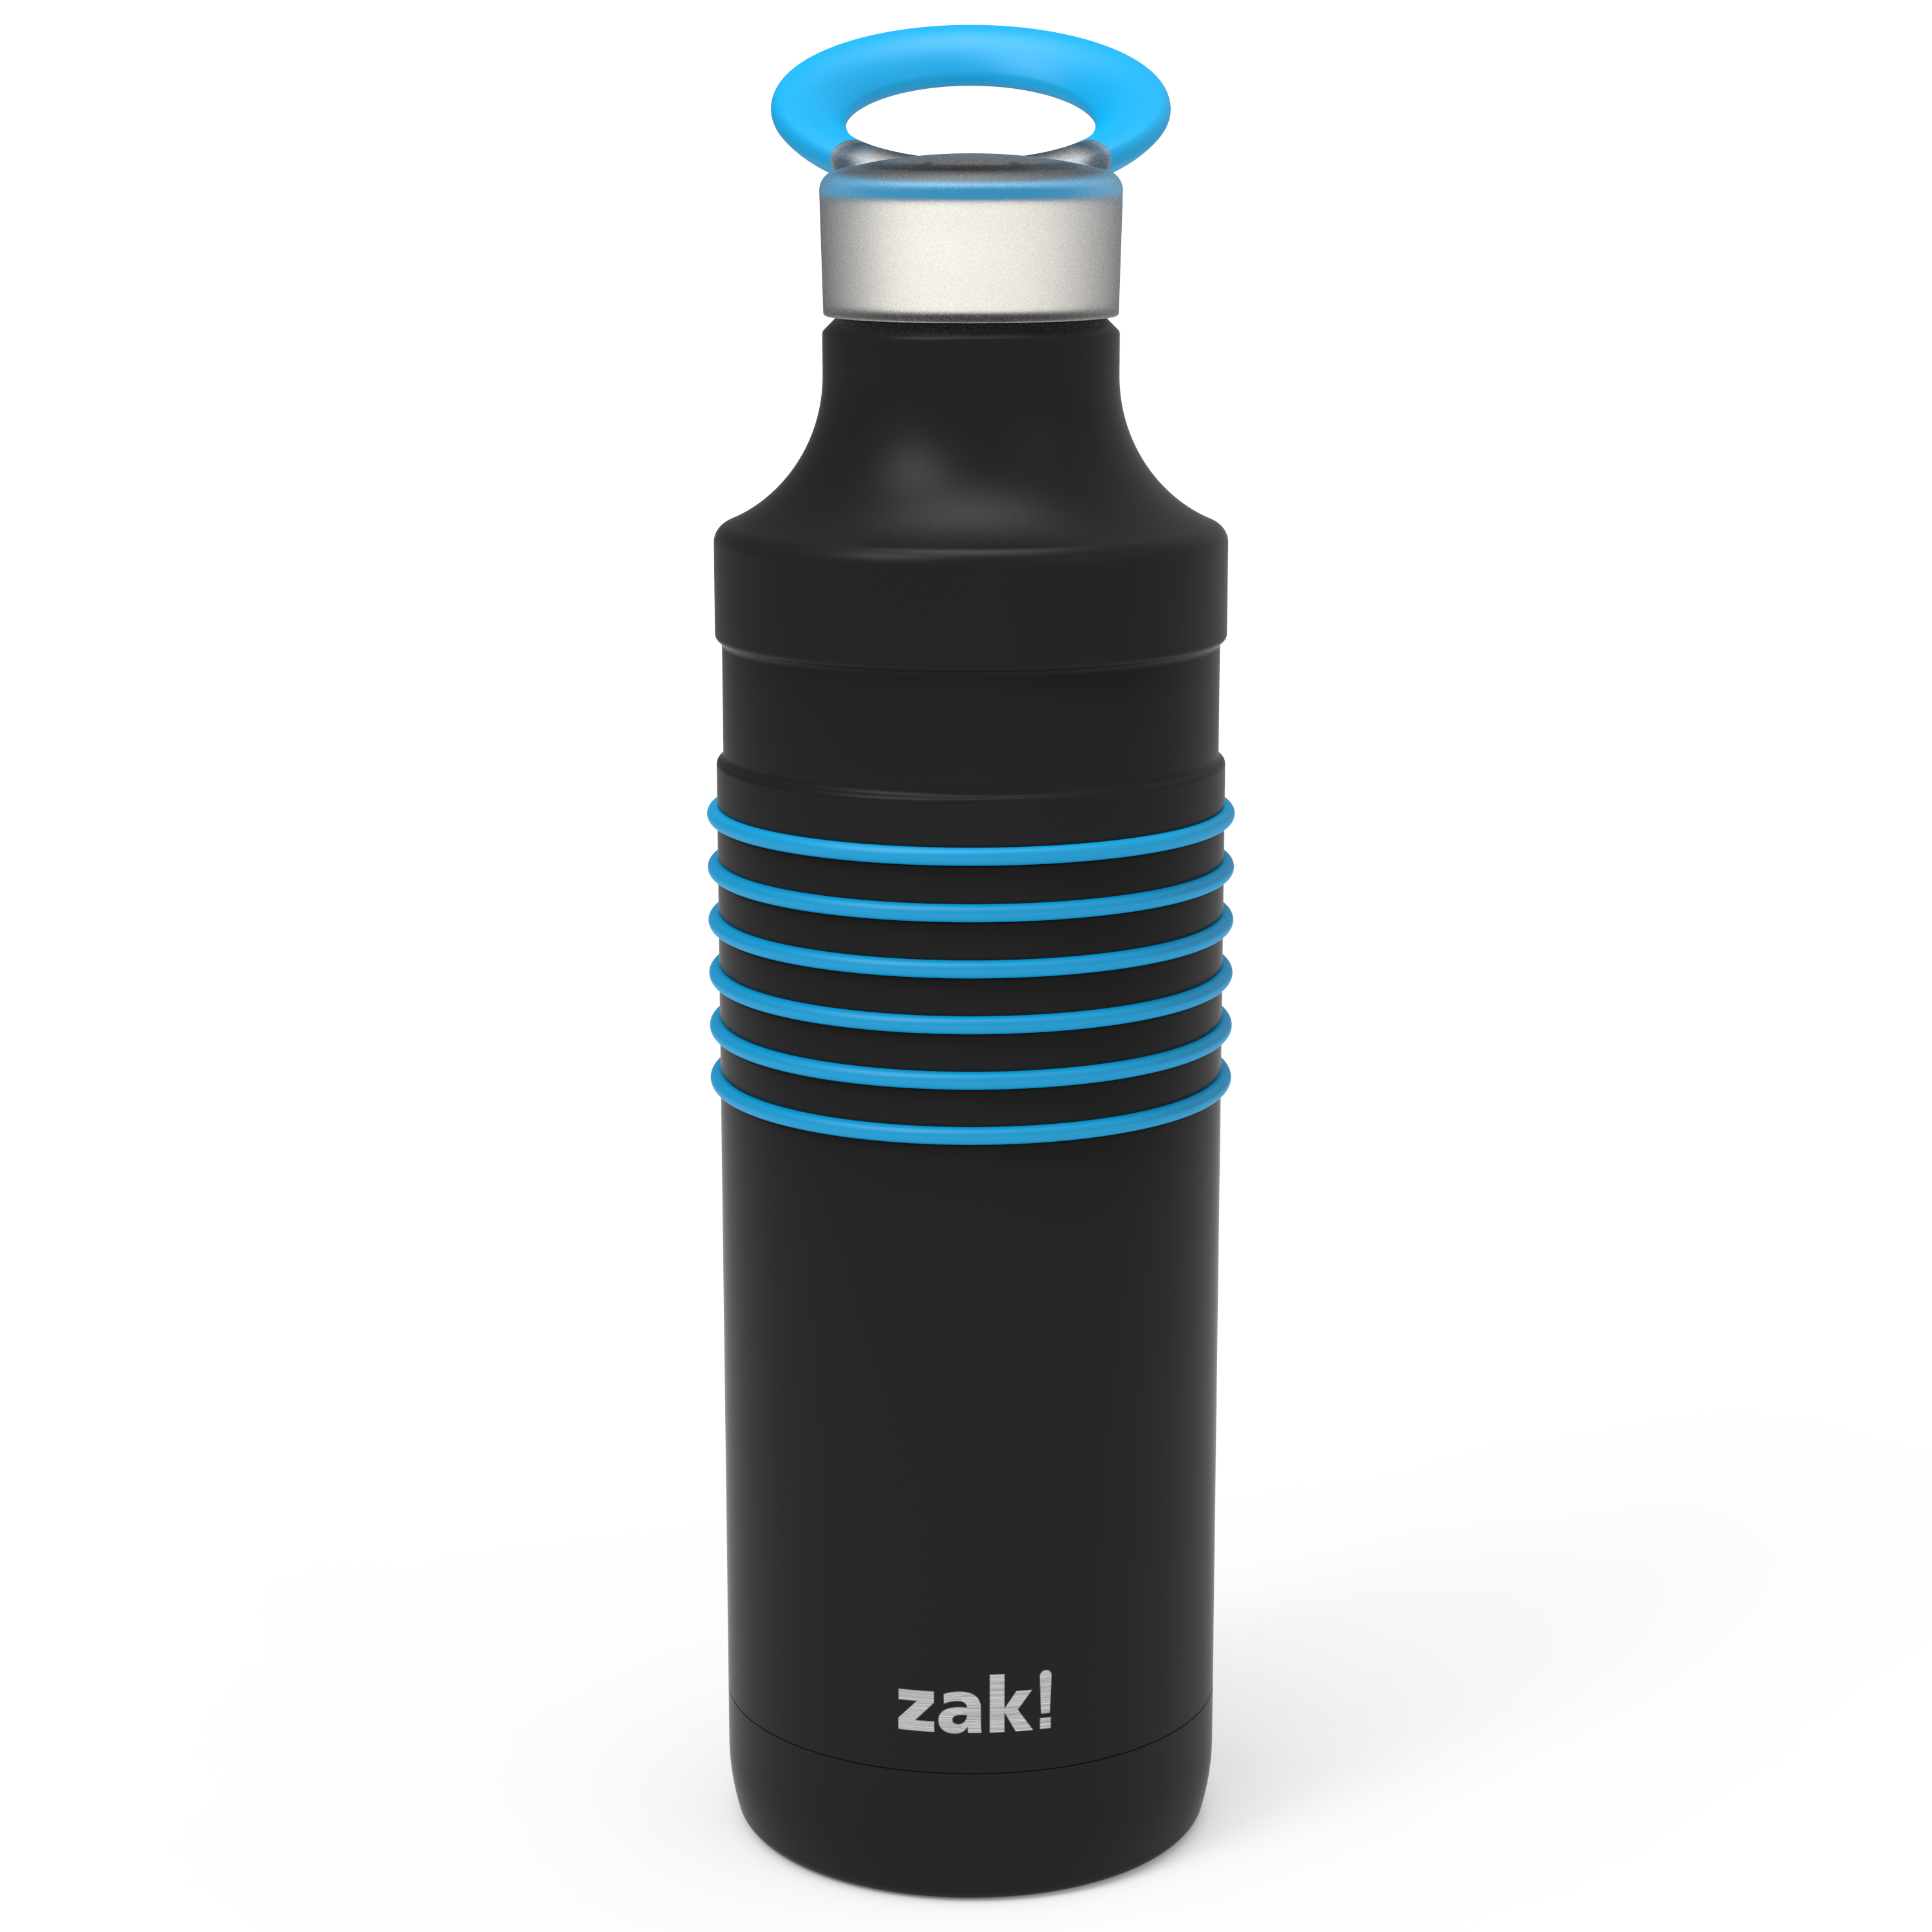 HydraTrak 22 ounce Vacuum Insulated Stainless Steel Tumbler, Black with Blue Rings slideshow image 2